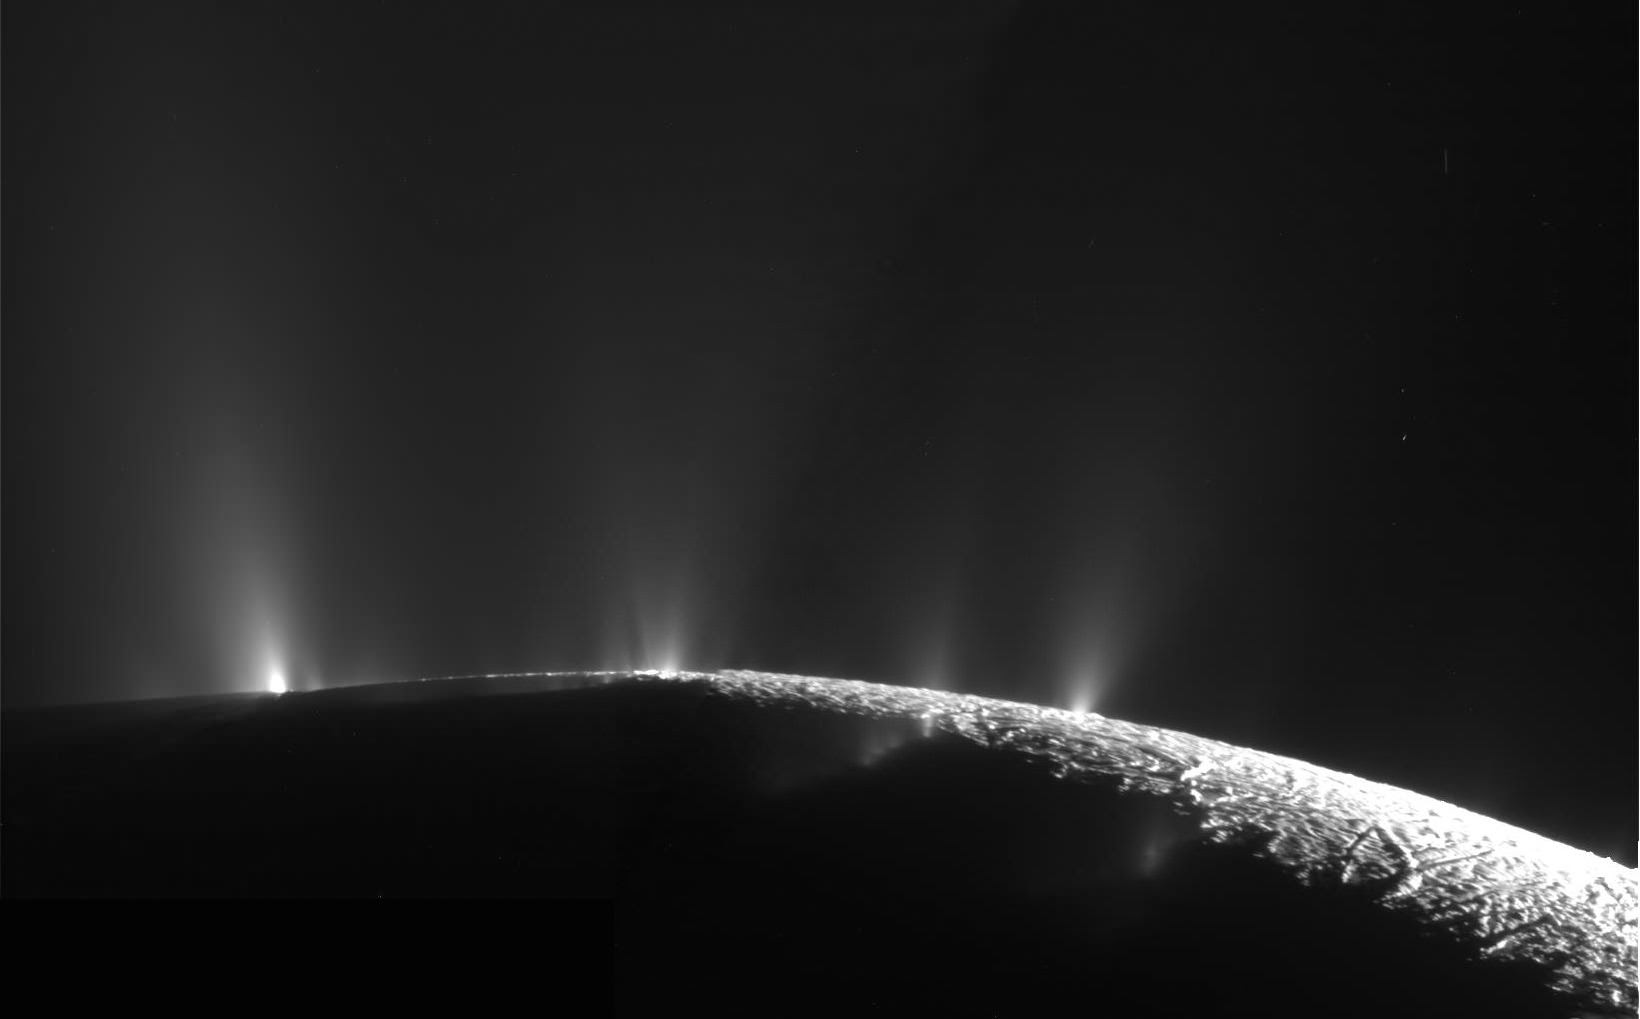 Icy water vapor geysers erupting from fissures on Enceladus. Credit: NASA/JPL